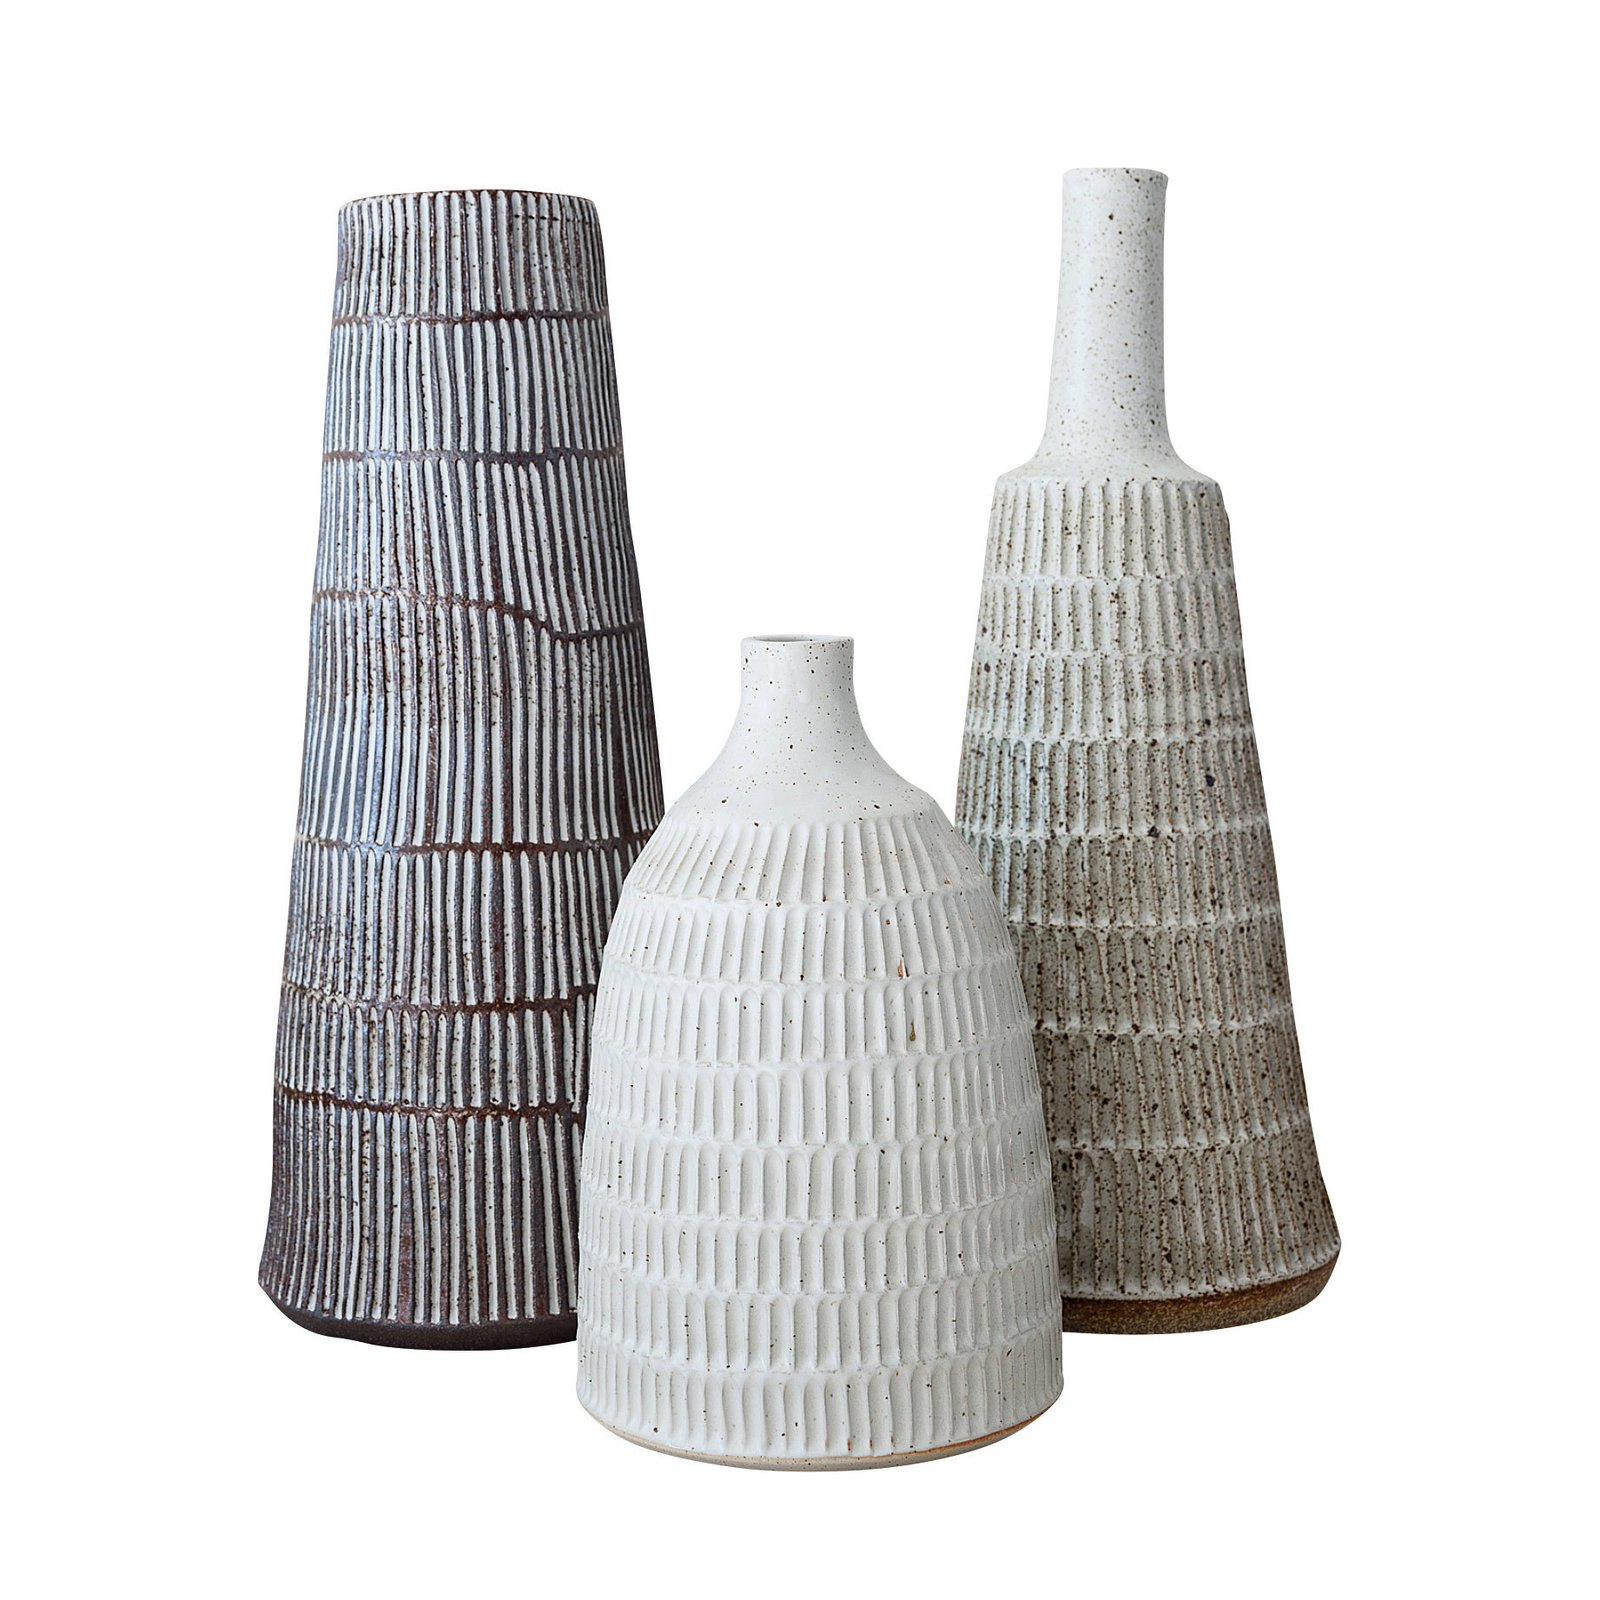 Los Angeles, California  Stripe and Scandi Lamps (bases shown here) by Mt. Washington Pottery, from $1,200. Beth Katz's hand-thrown stoneware and porcelain gives Scandinavian style a rough-hewn wabi-sabi energy.  Photo 8 of 9 in 9 Modern Designs That Were Born in the USA